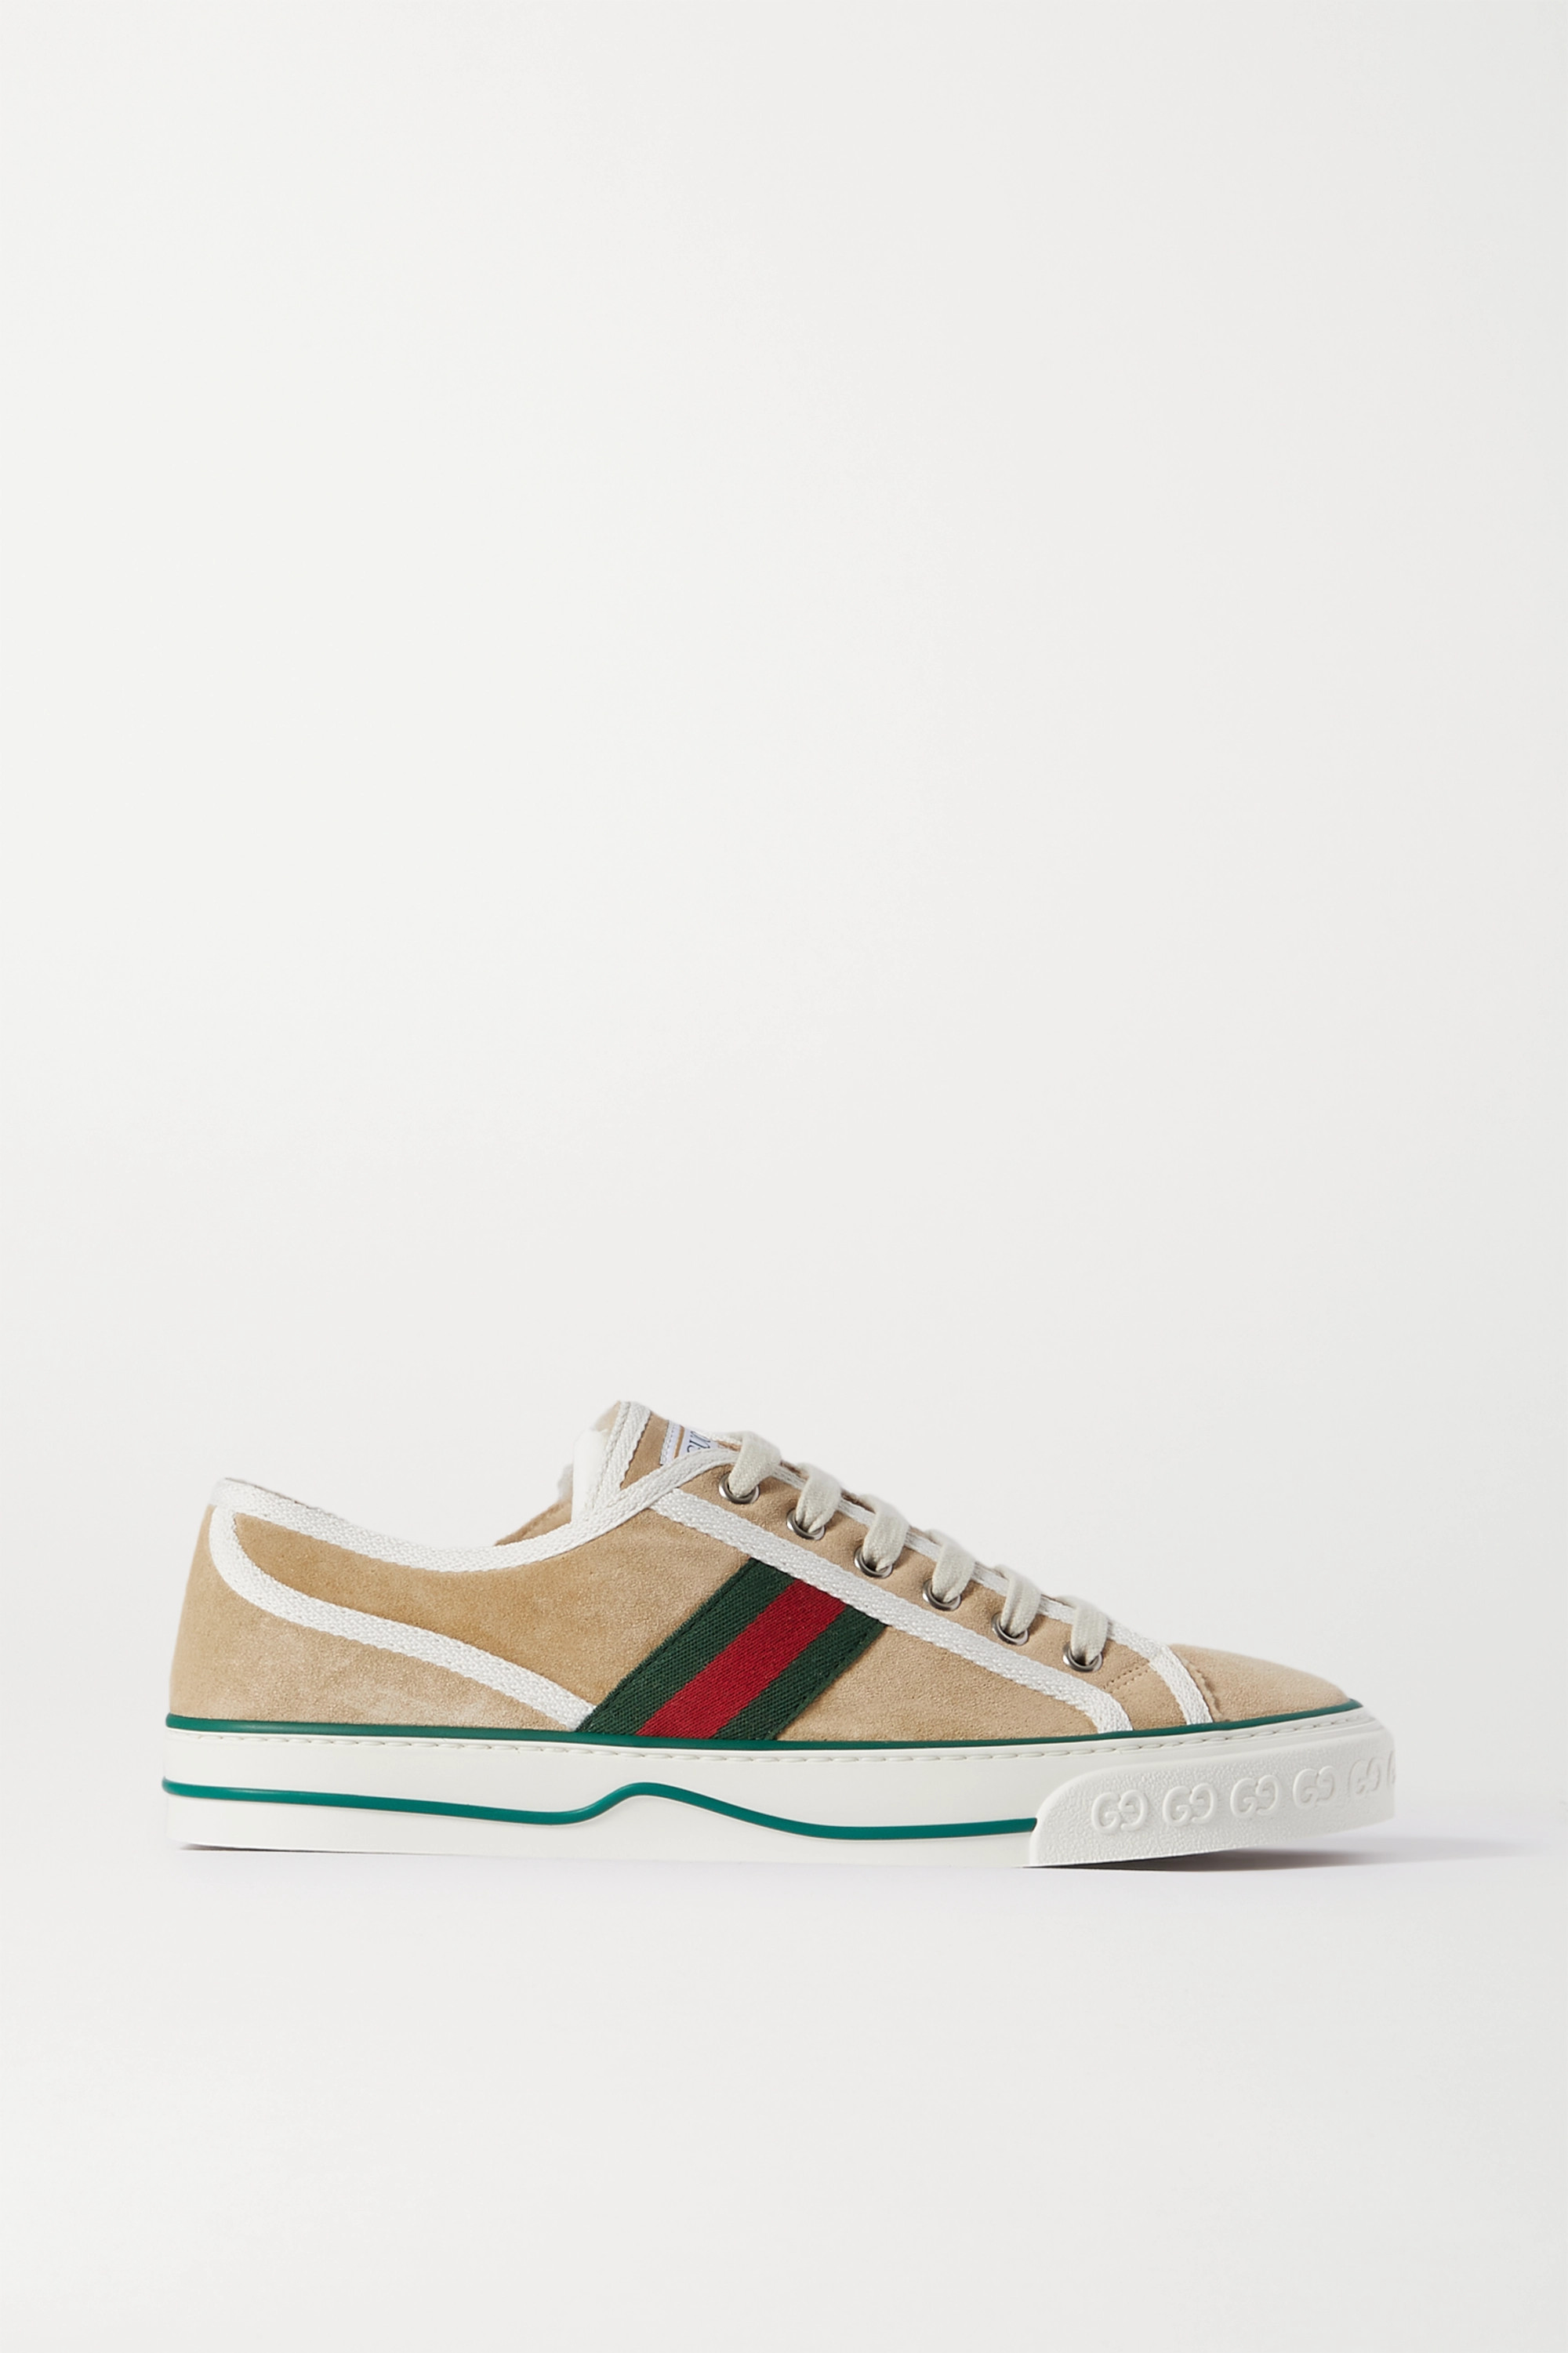 GUCCI Tennis 1977 logo-embroidered shearling-lined suede and canvas sneakers